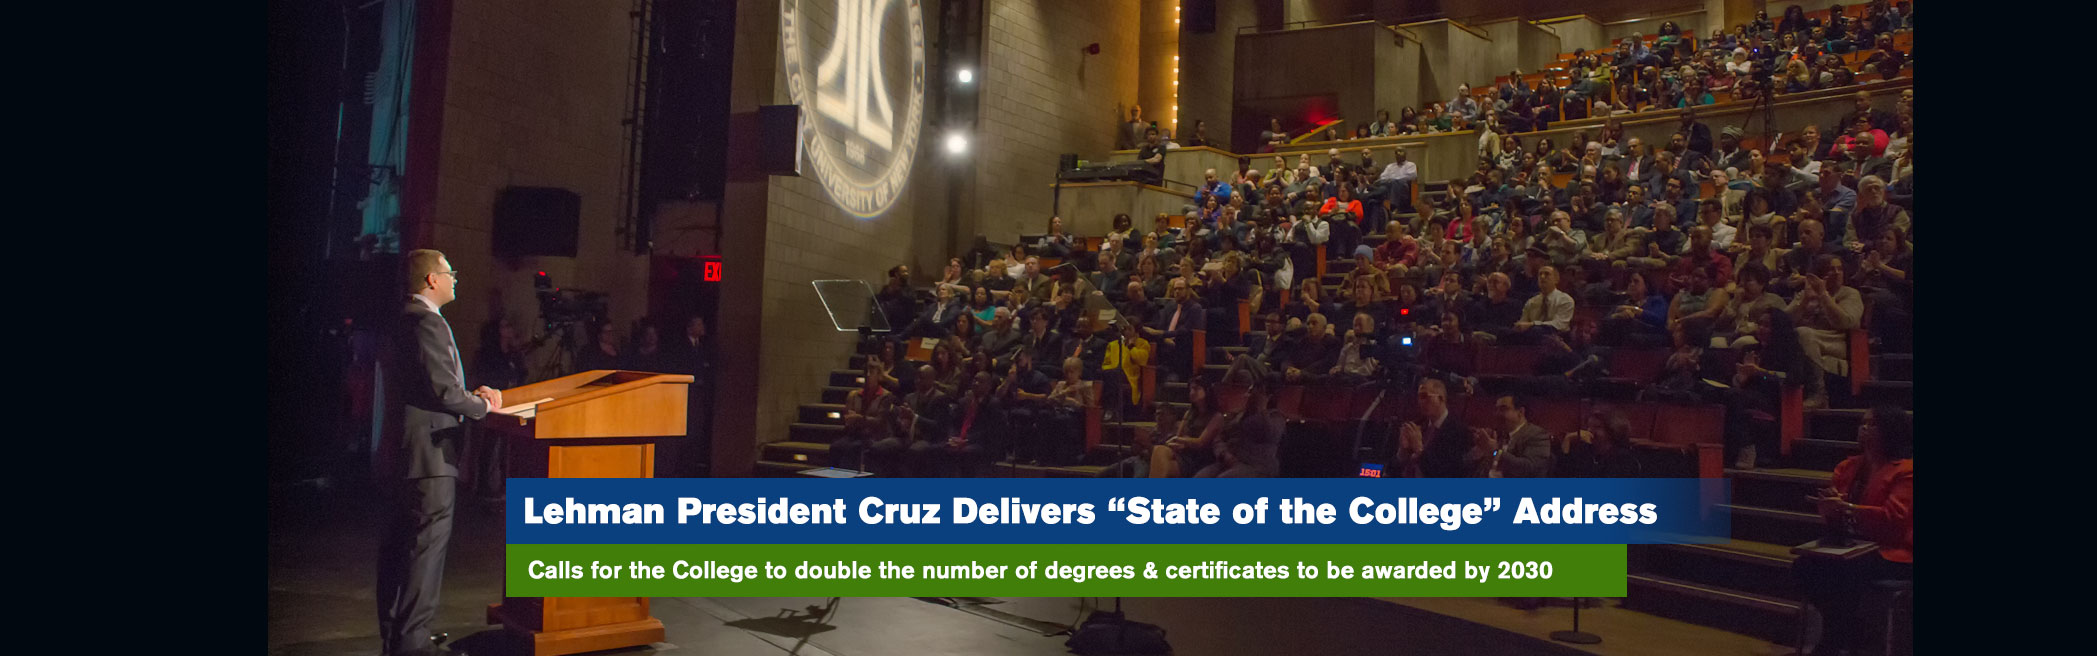 "Lehman President Cruz Delivers ""State of the College"" Address"